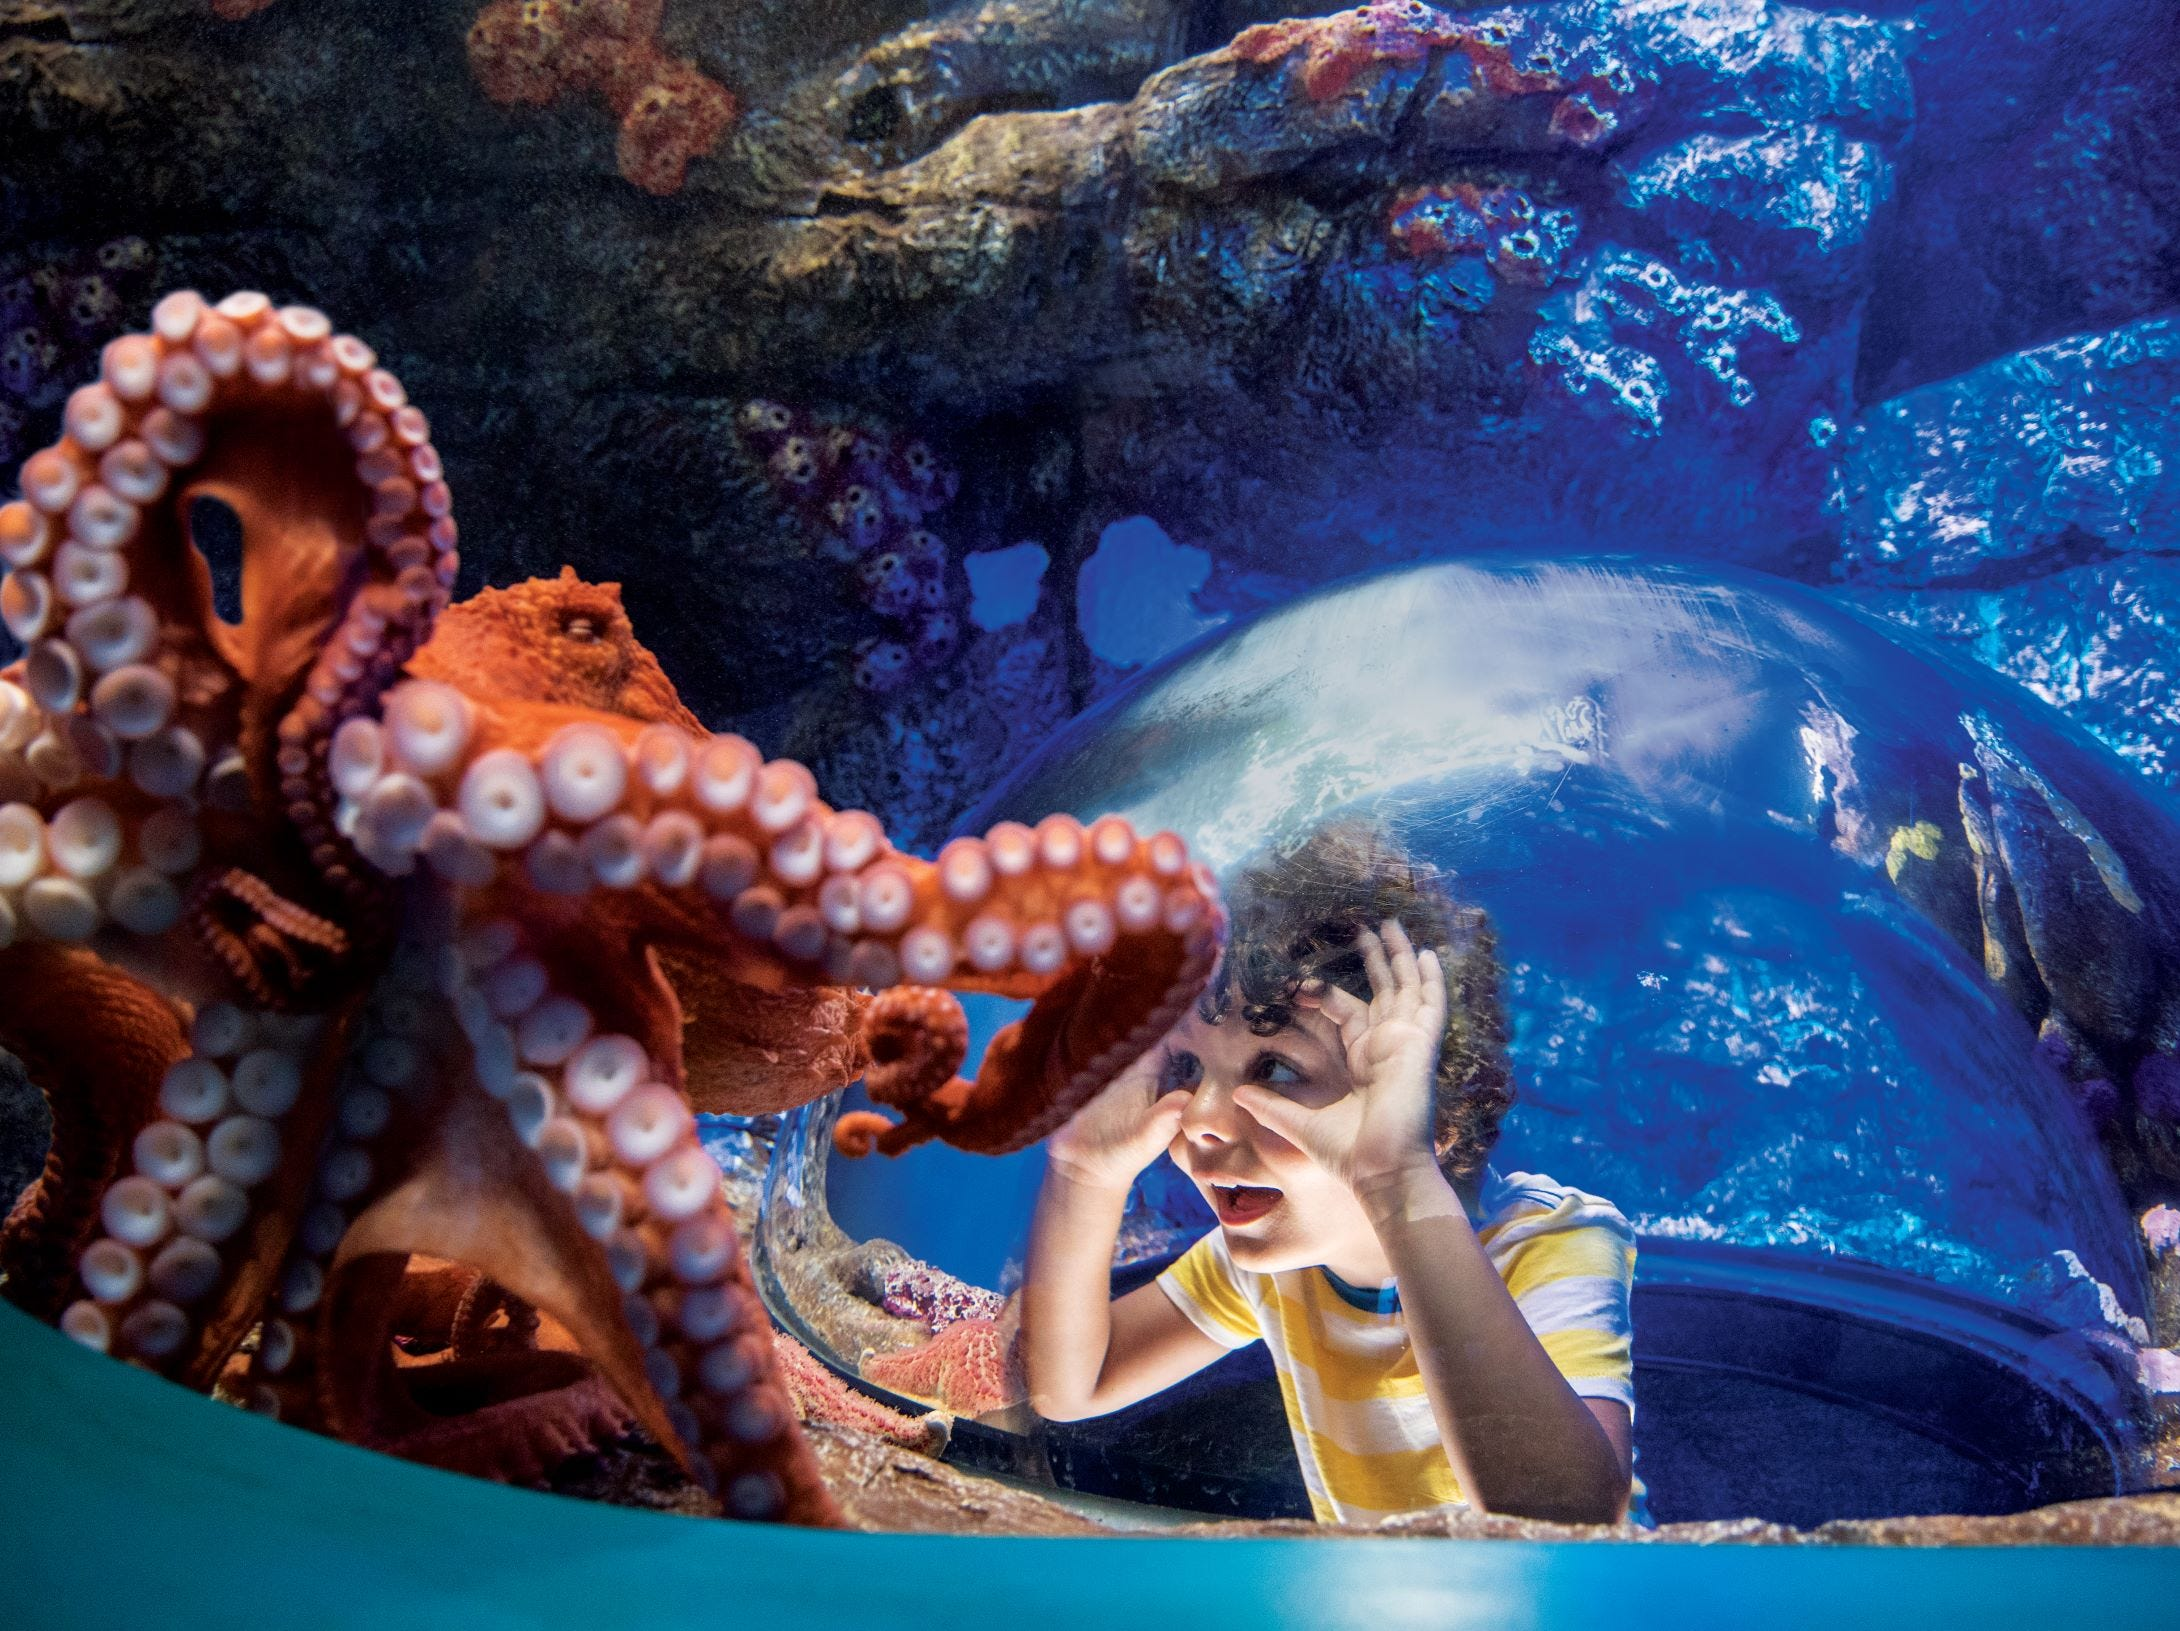 A guest gets a close look at a Pacific octopus at SeaWorld San Diego.